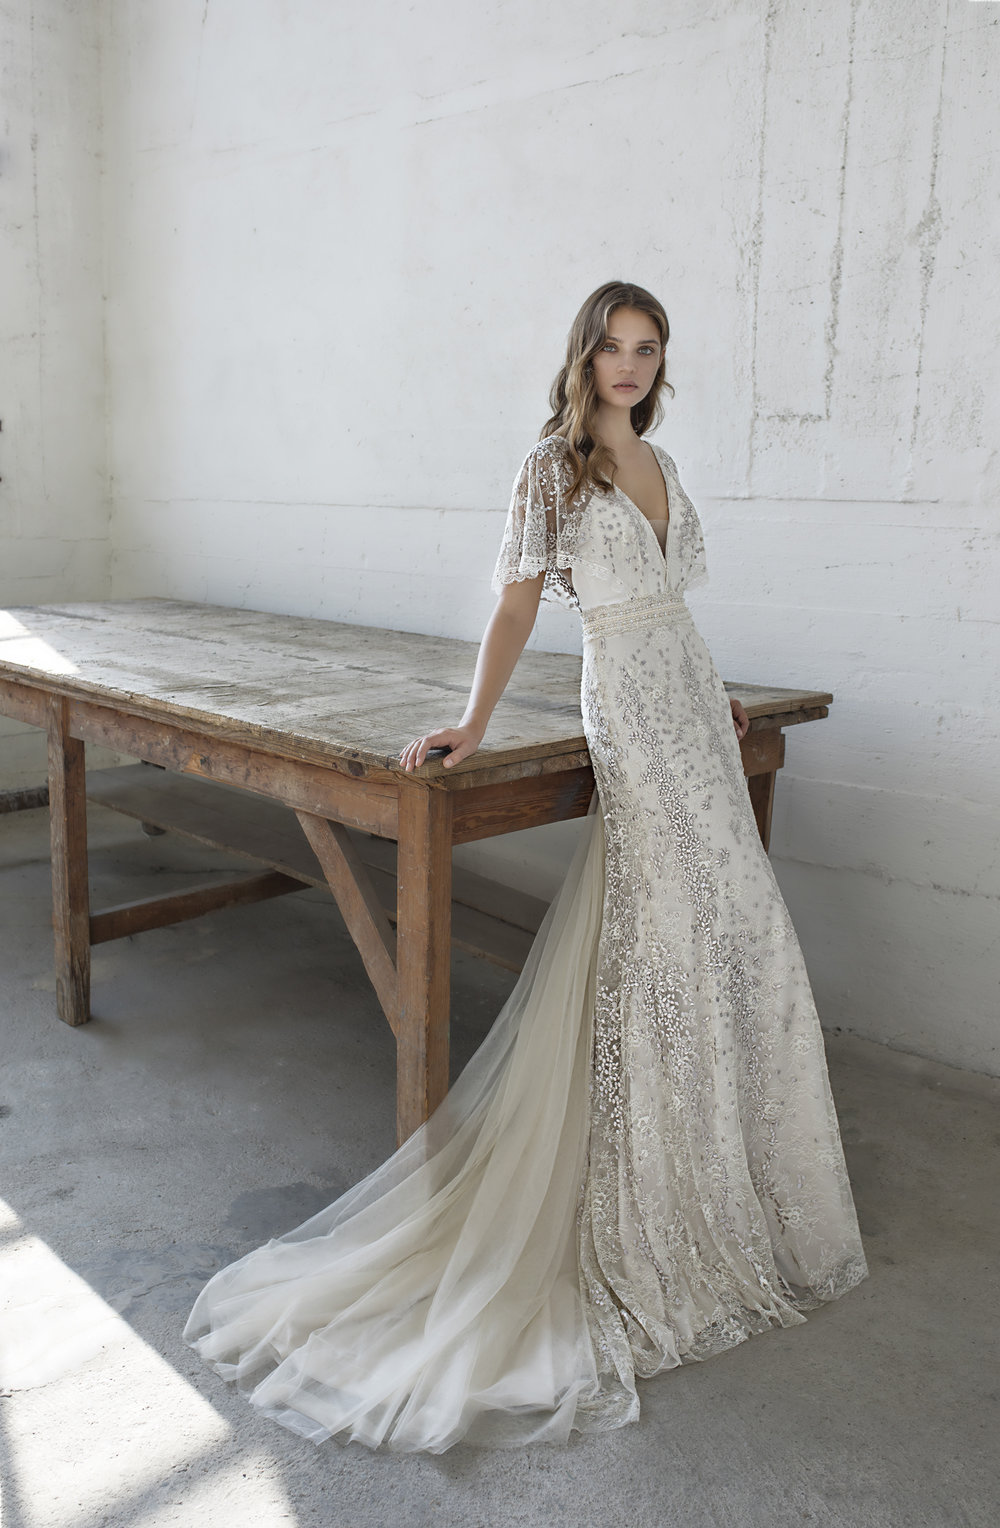 / 9 - MODECA- EDENScattered with gold and burnished embroidery, this free flowing lace dress is the definition of ethereal.